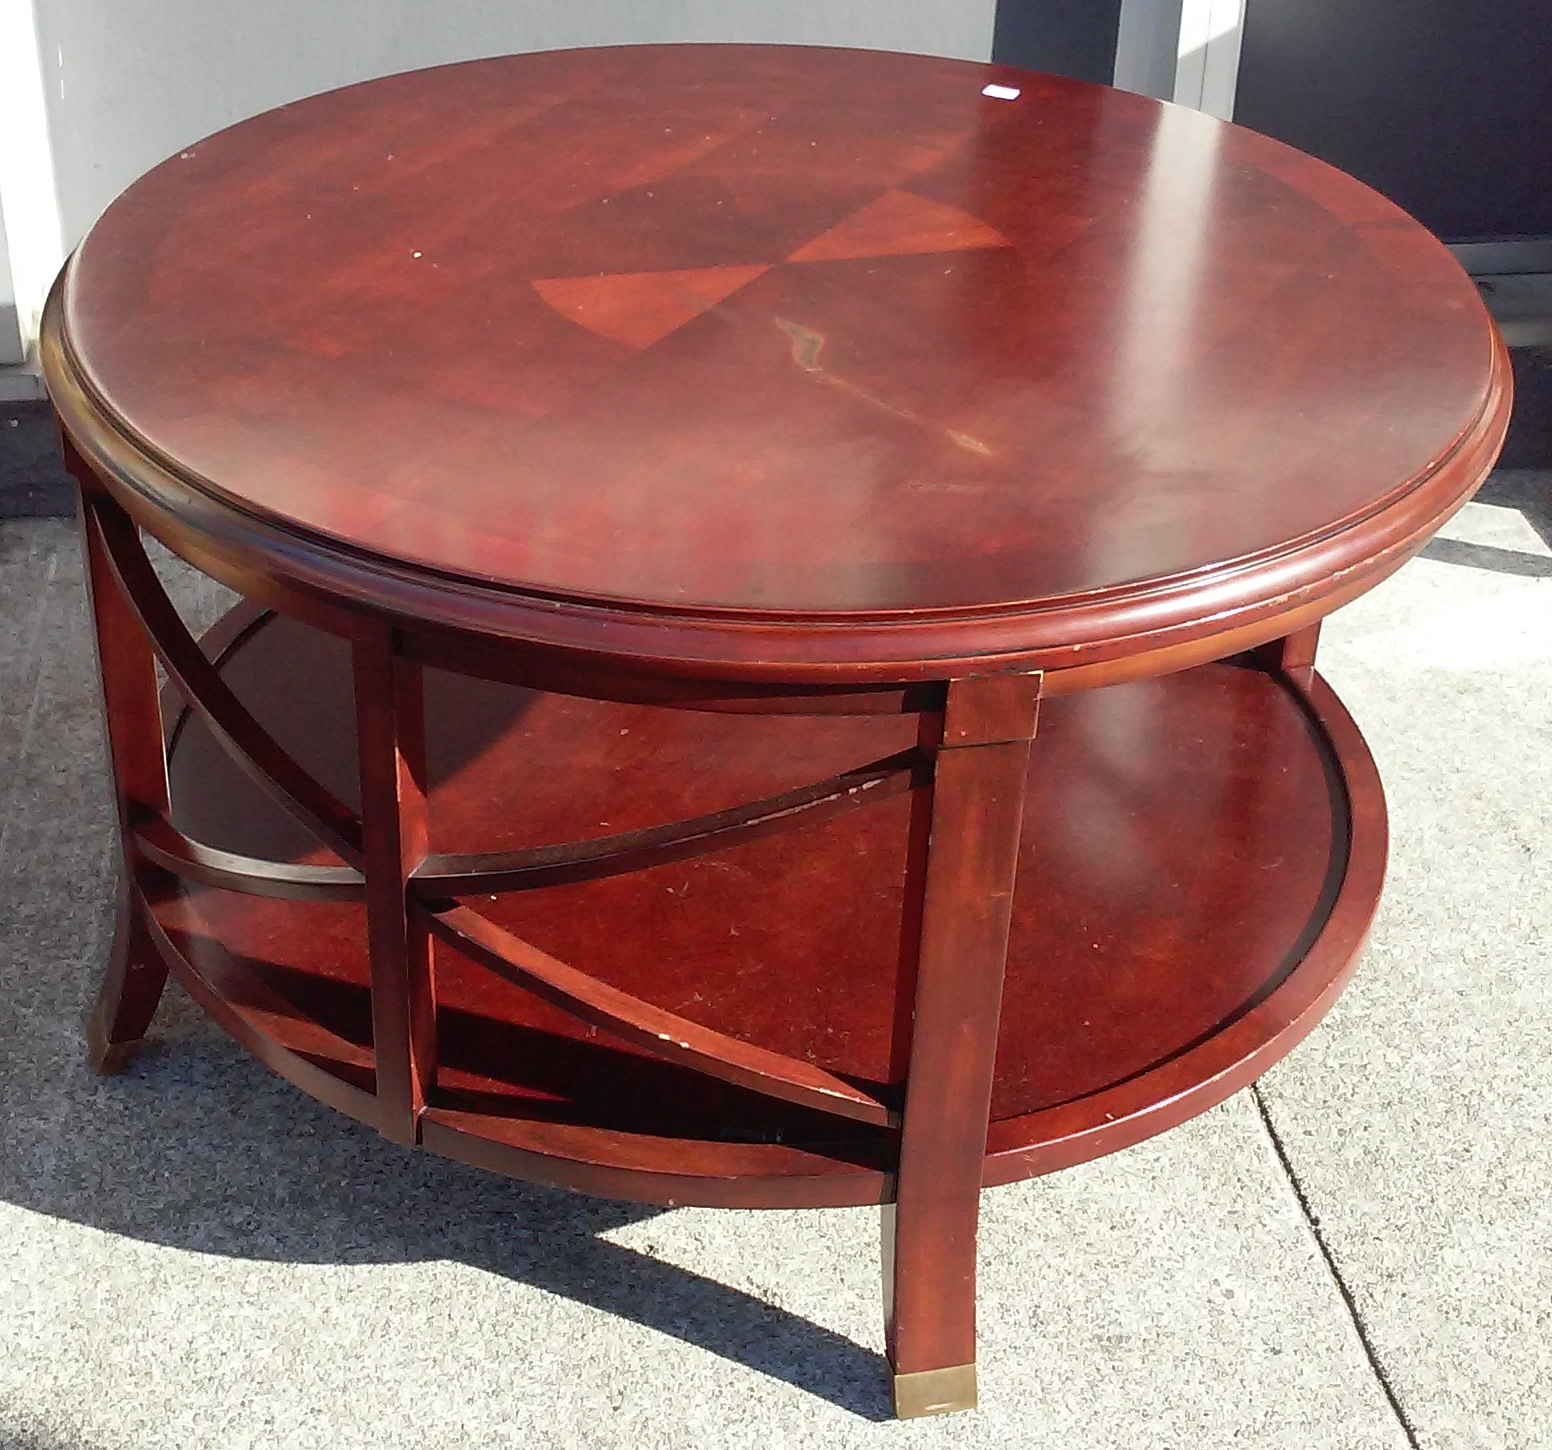 Uhuru Furniture Collectibles Sold Bargain Buy 21156 Bombay Coffee Table 60